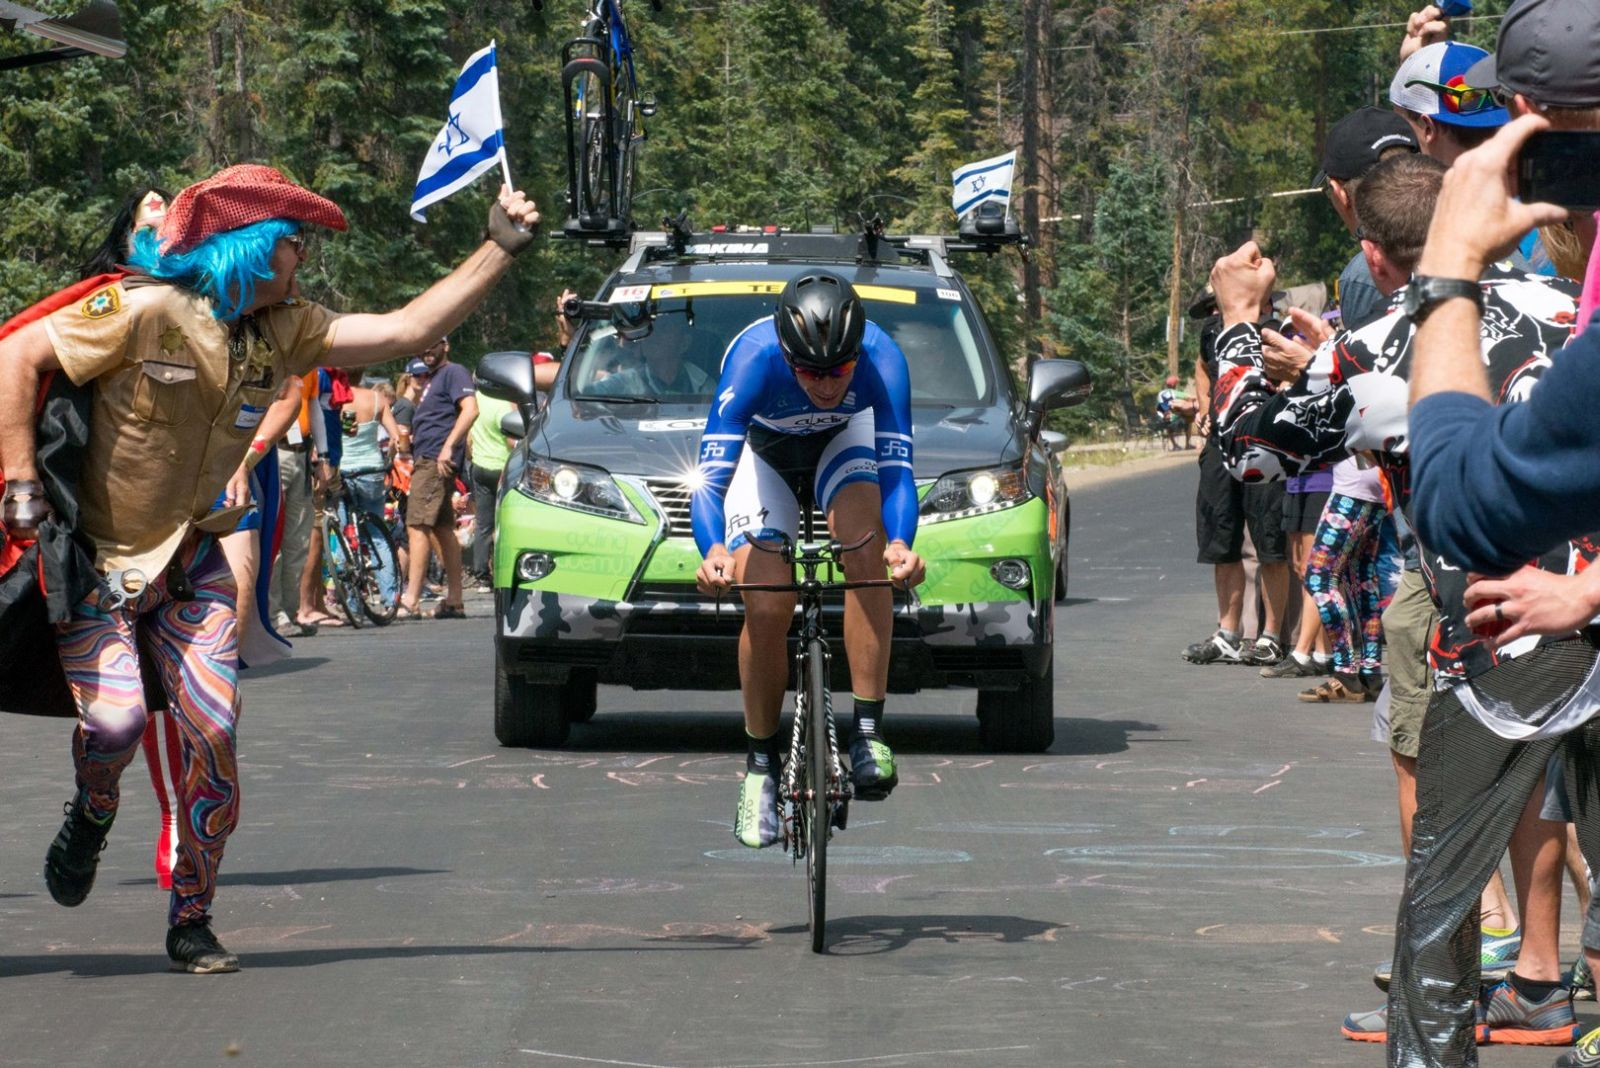 Team Cycling Academy's Dan Turek being cheered on at USA Pro Challenge in Denver. Photo by John Pearce